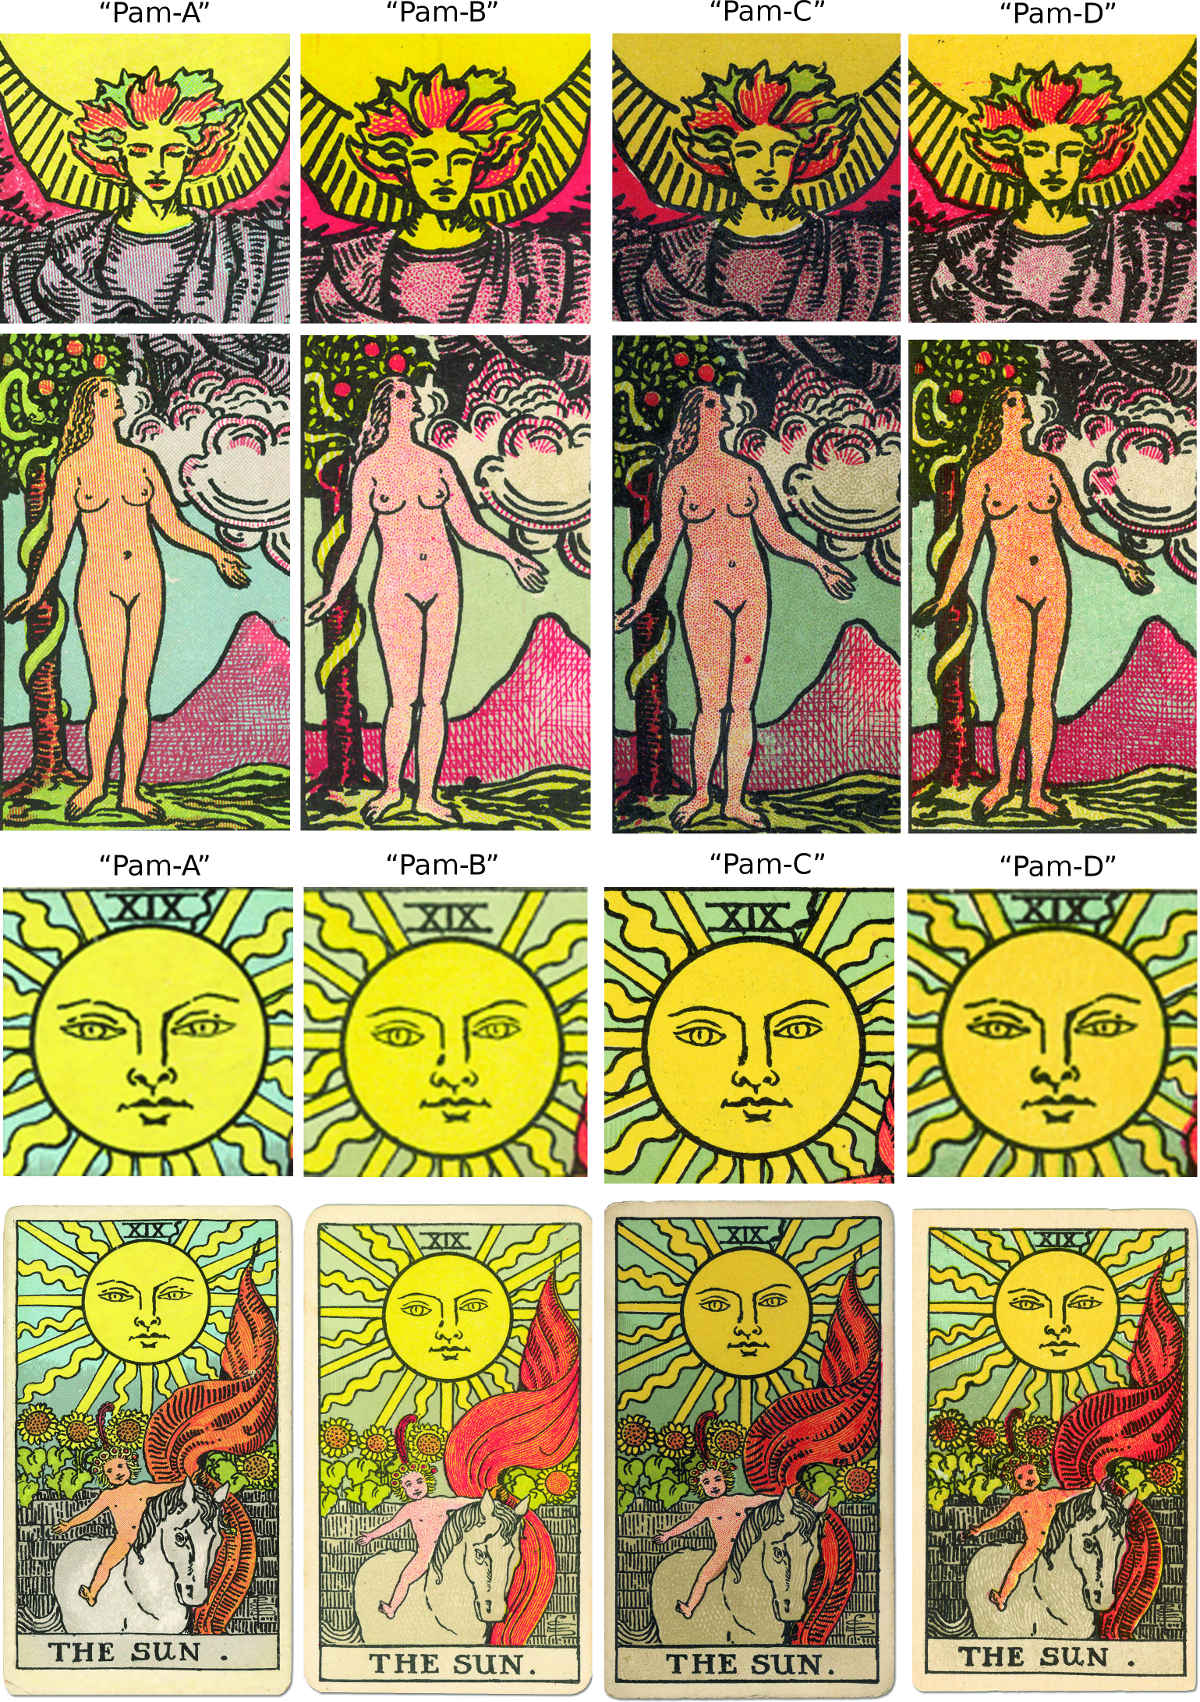 Rider Waite Tarot (early editions) details compared